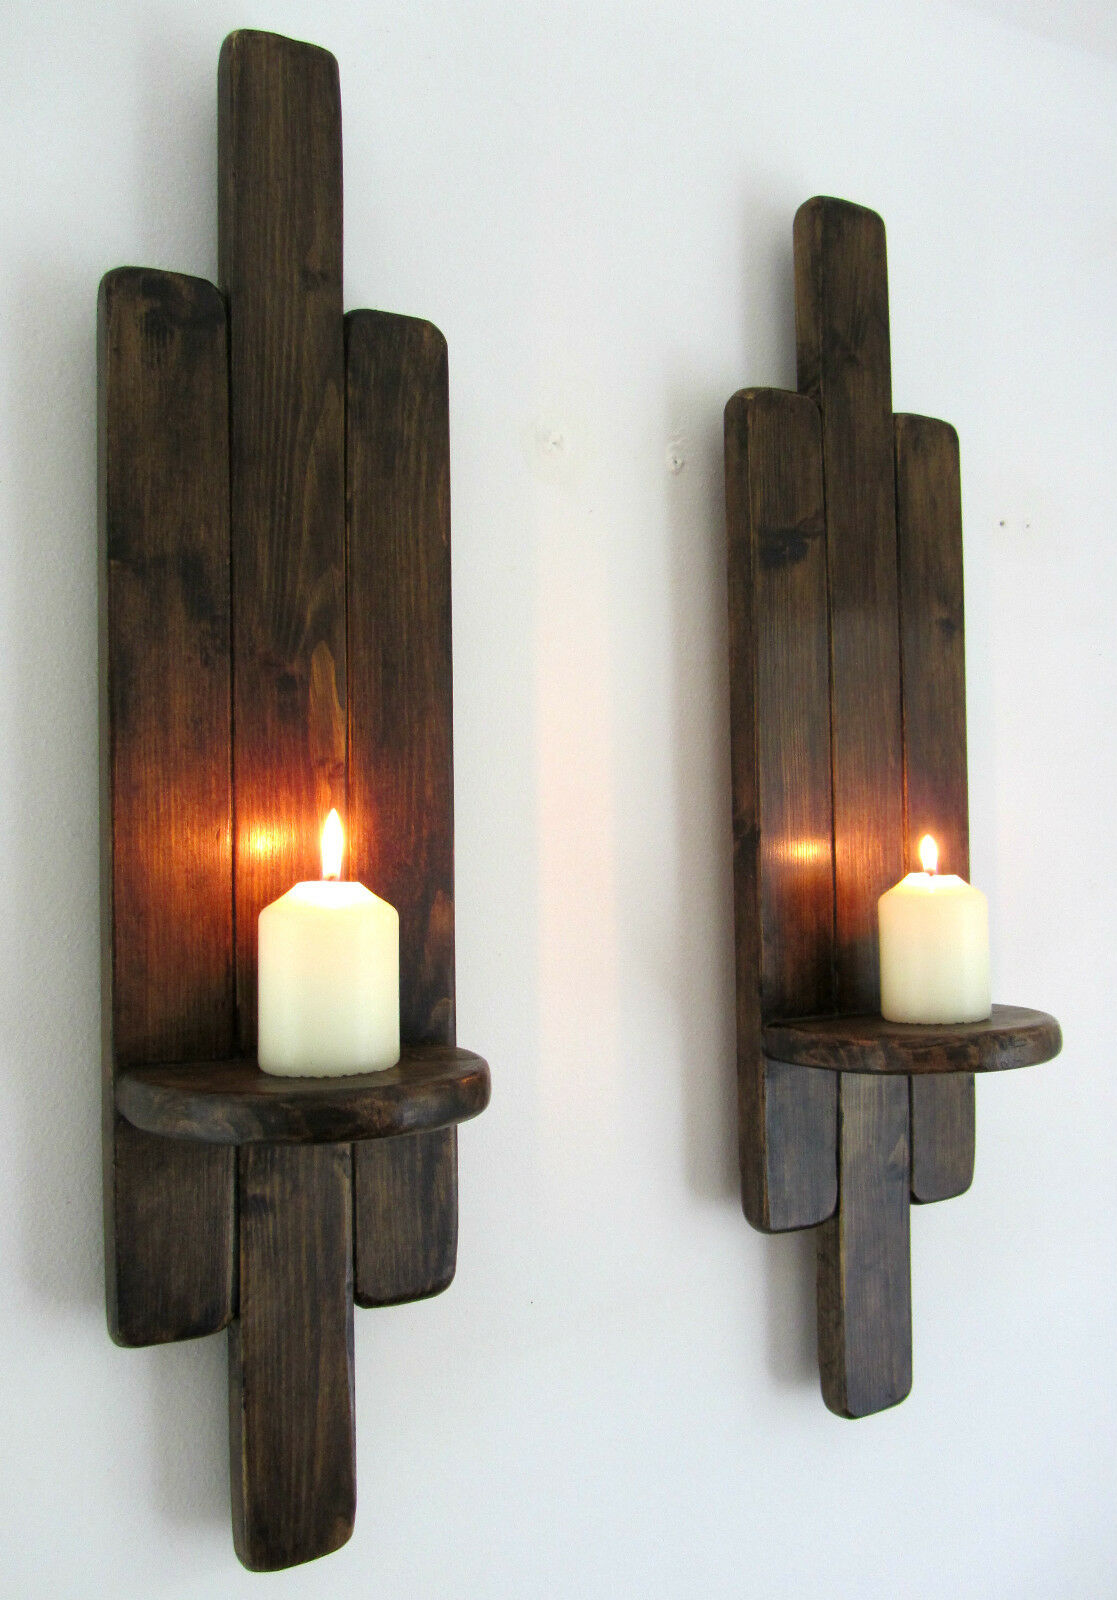 PAIR OF 60CM TALL RUSTIC WOOD  WALL SCONCE LED CANDLE HOLDERS ART DECO STYLE